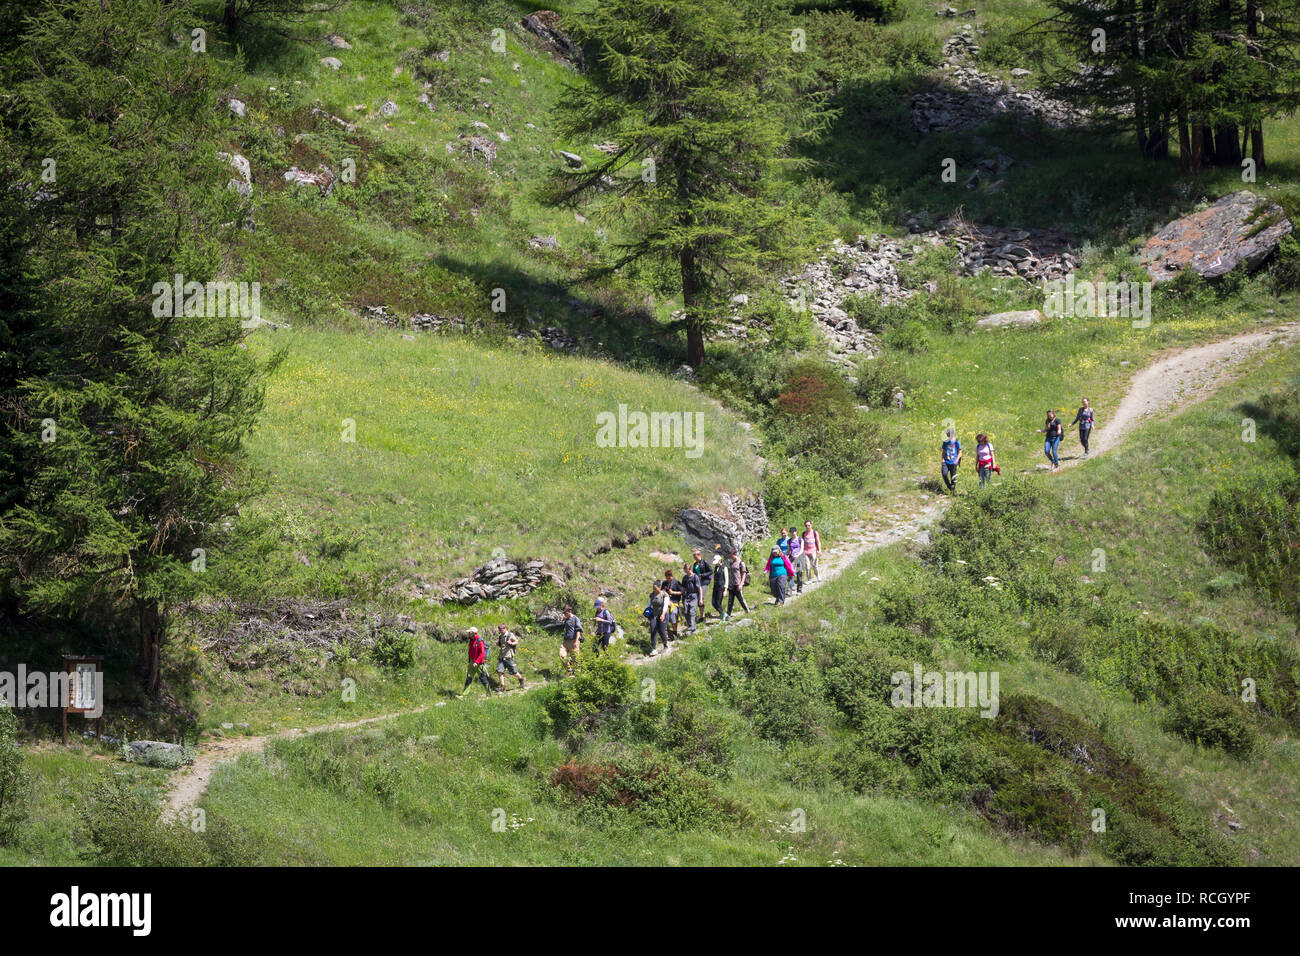 Hiking in Parco Nazionale del Gran Paradiso or Gran Paradiso National Park, Aosta Valley, Italy. - Stock Image